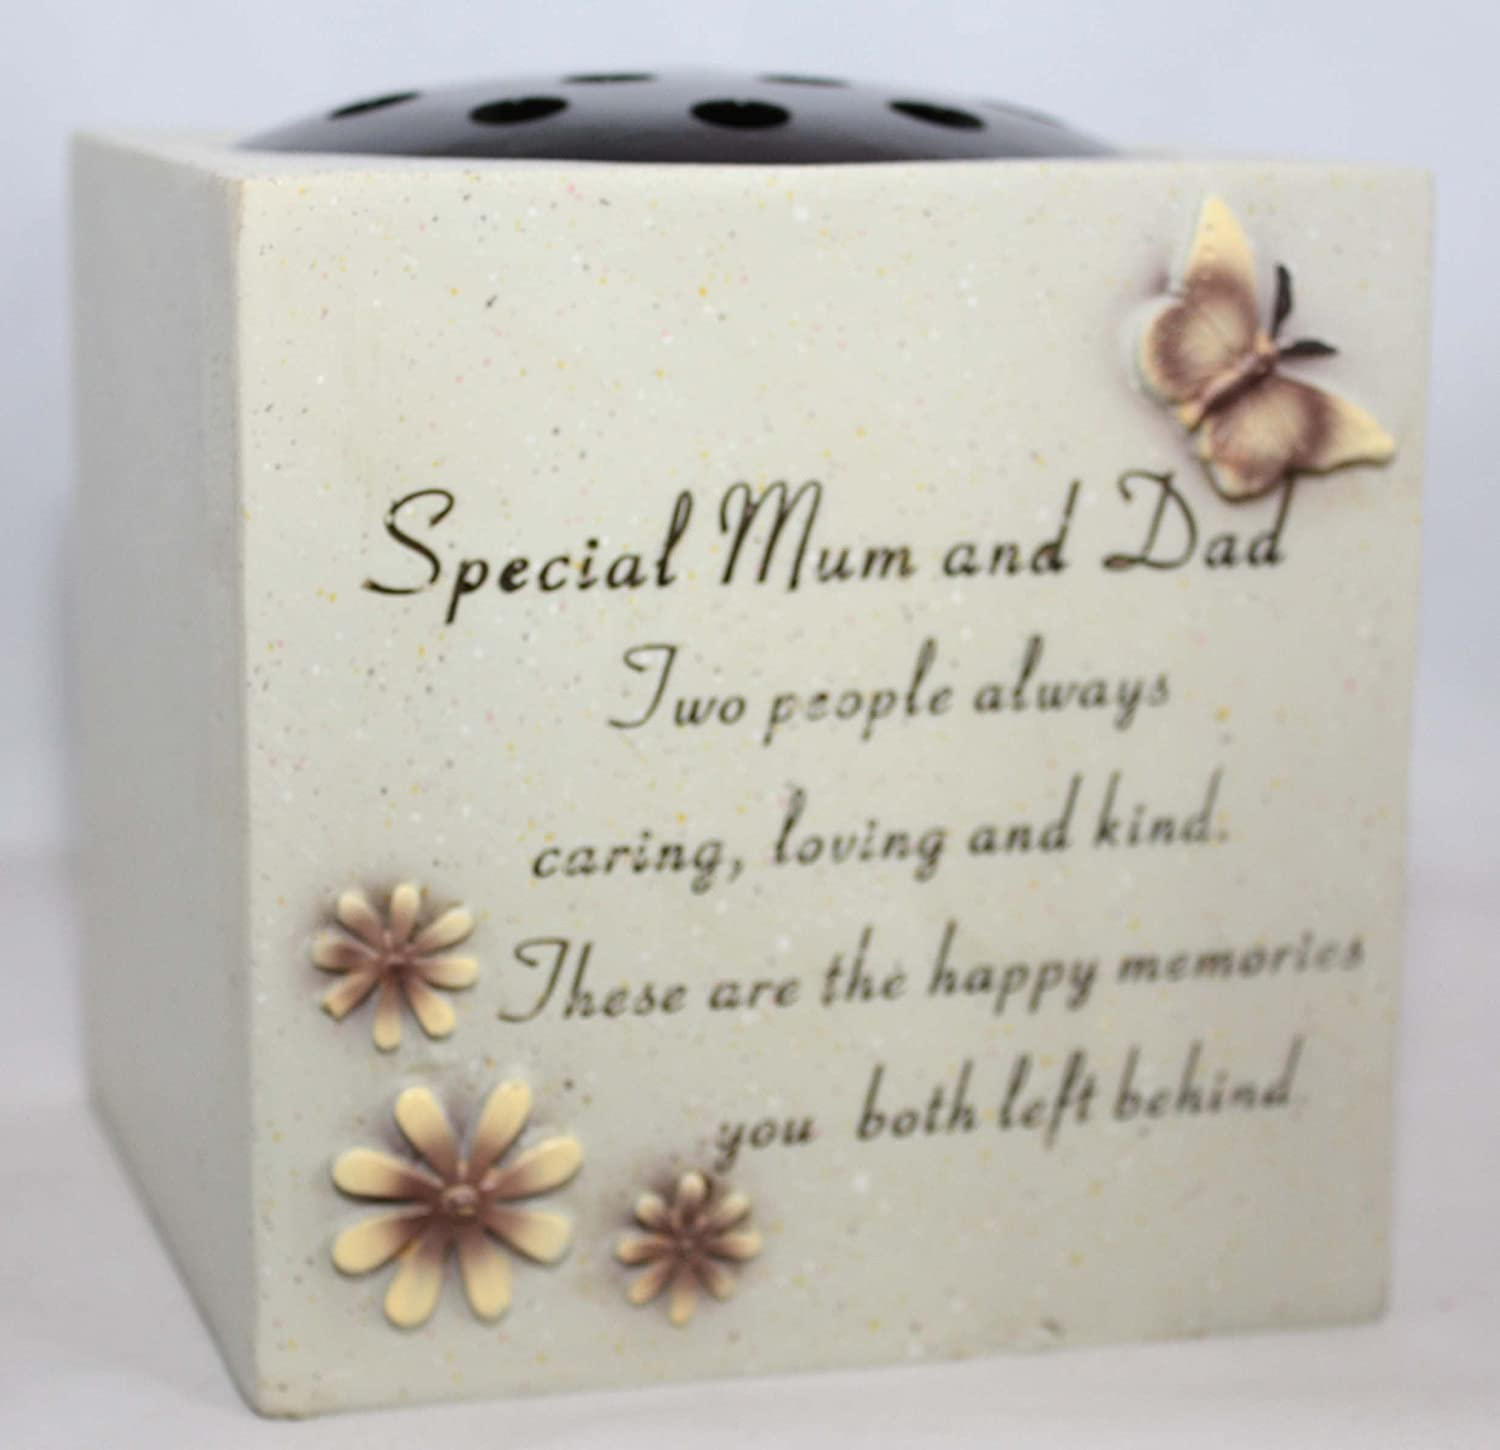 Special Mum And Dad Verse Graveside Memorial Grave Pot Amazon